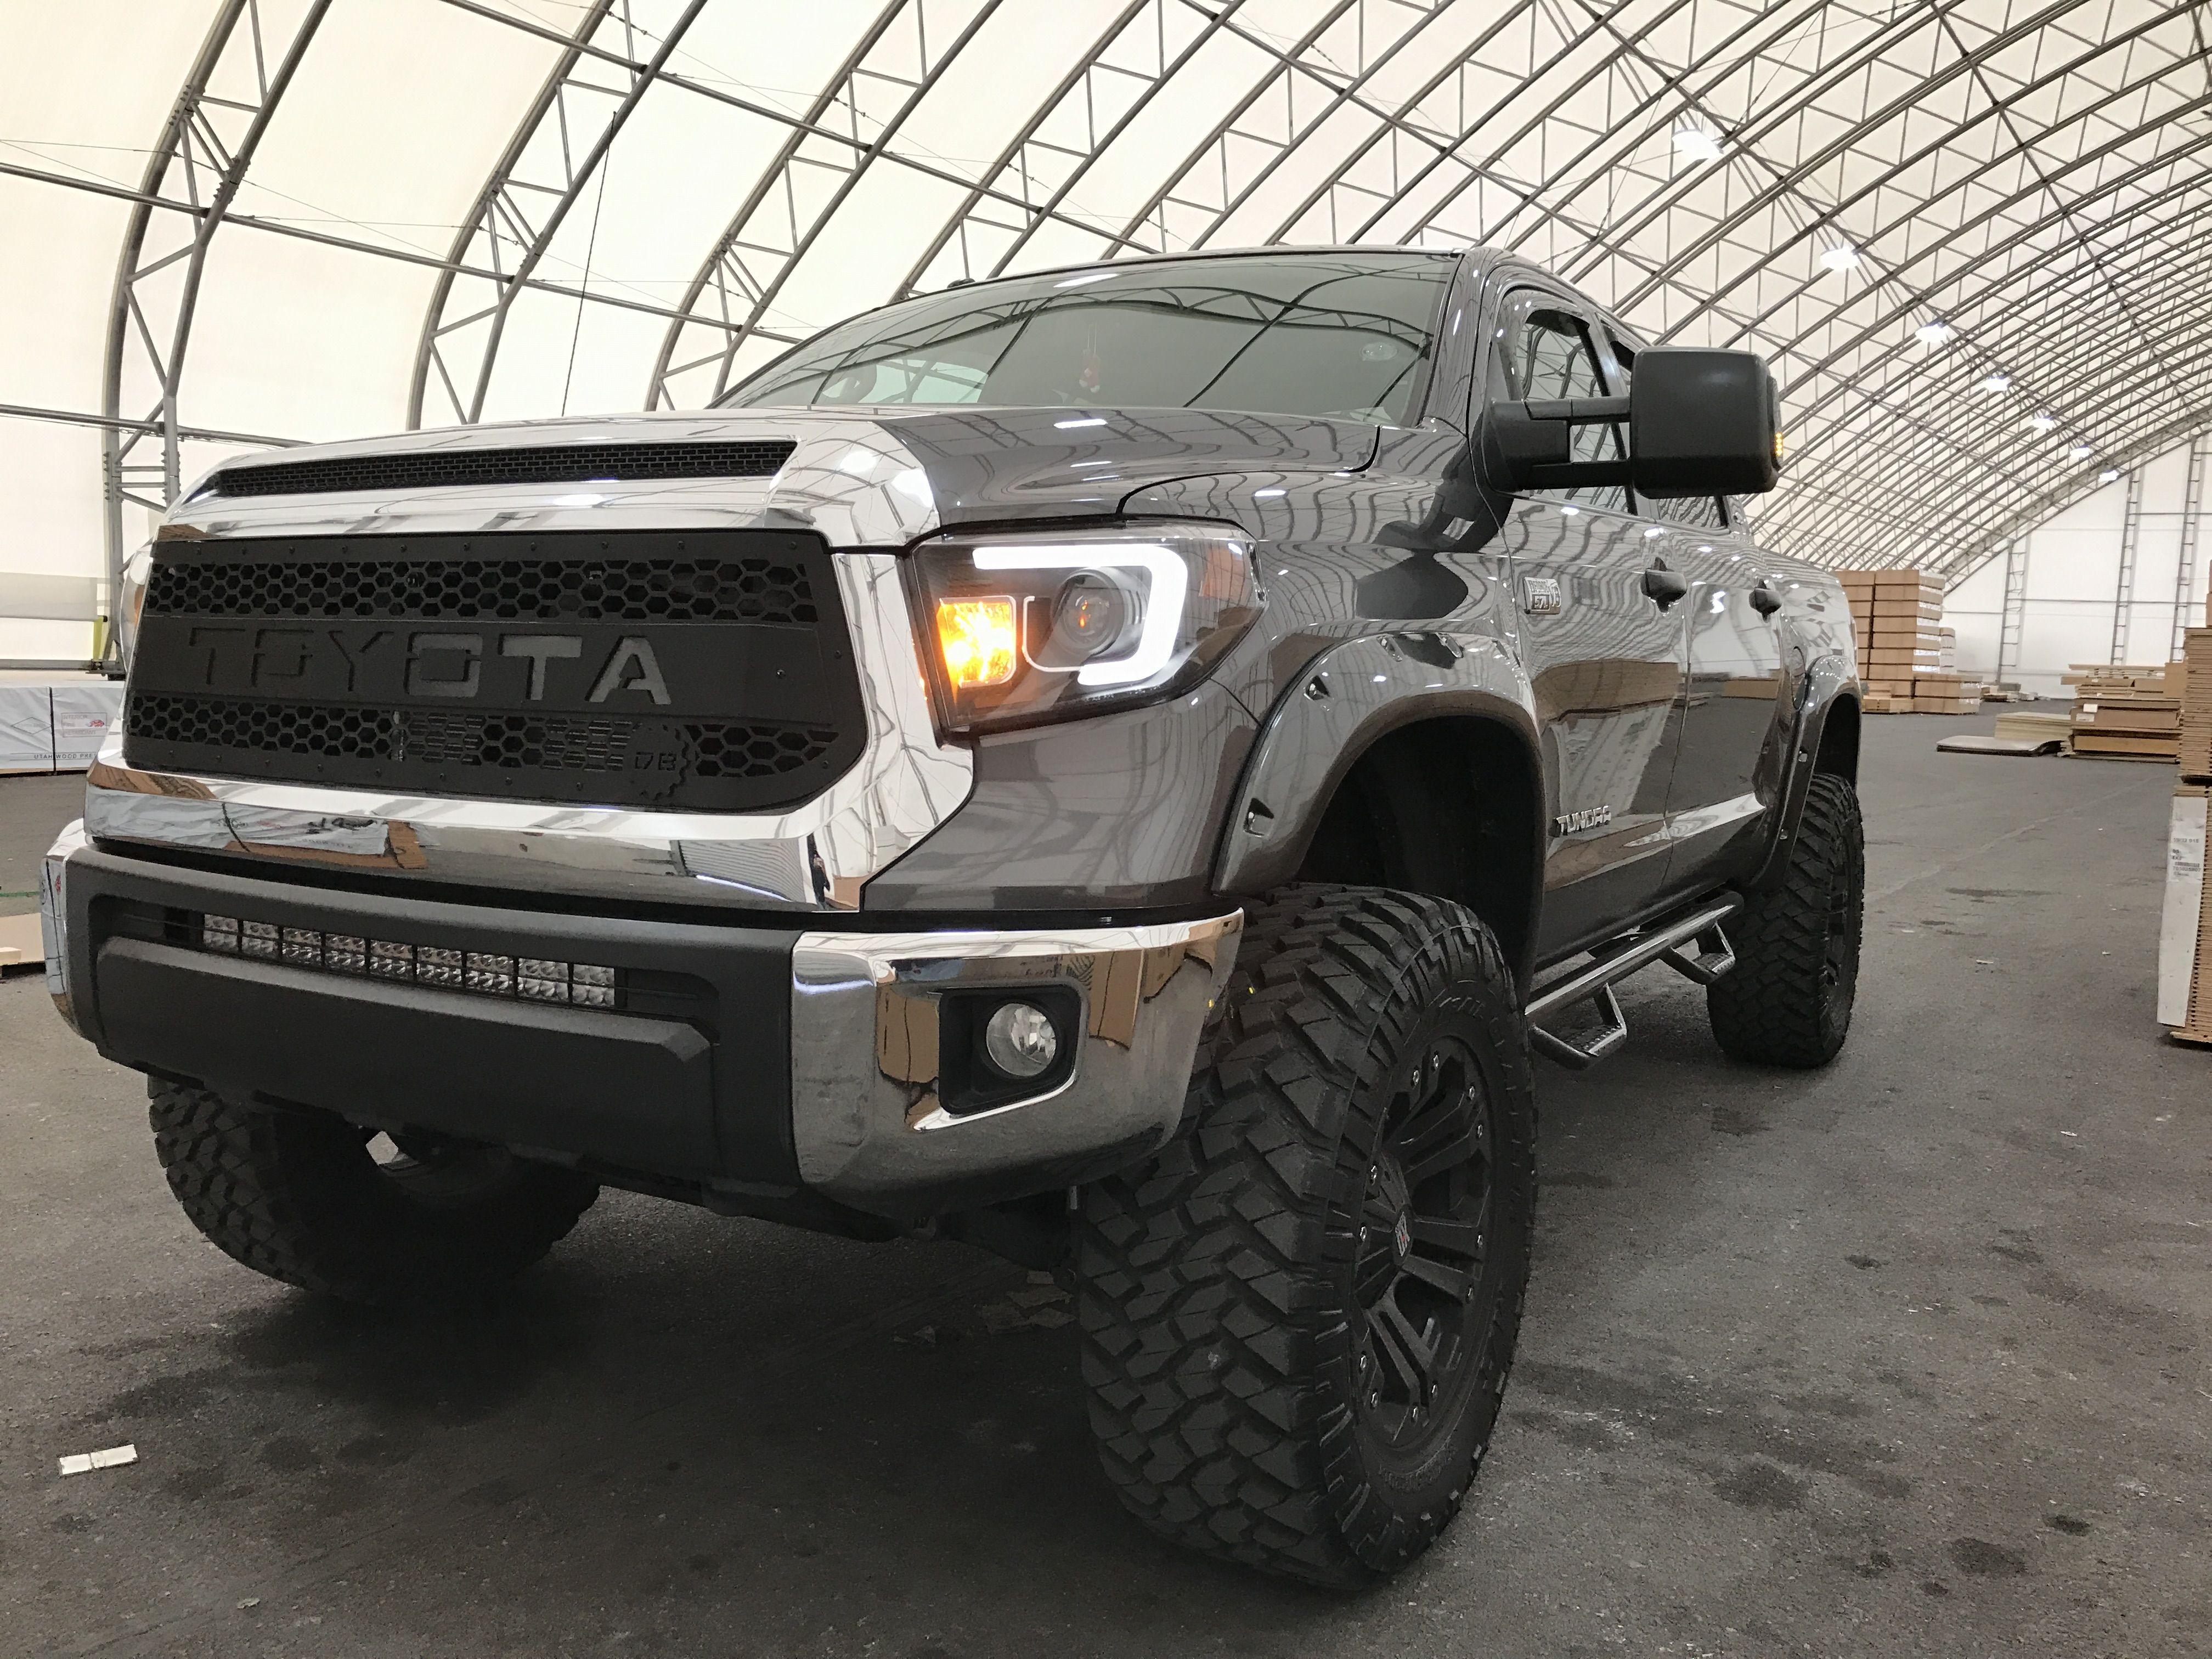 2014 toyota tundra with magnuson supercharger pushing 550 hp